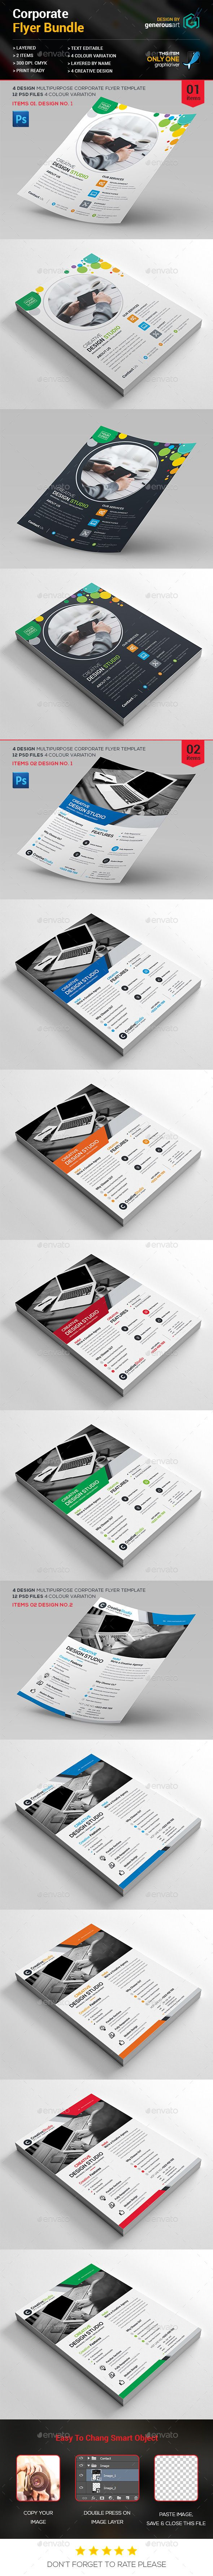 Corporate Flyer Design Template Bundle 2 in 1 - Flyers Print Template PSD. Download here: https://graphicriver.net/item/flyer-bundle-2-in-1/17025784?s_rank=181&ref=yinkira